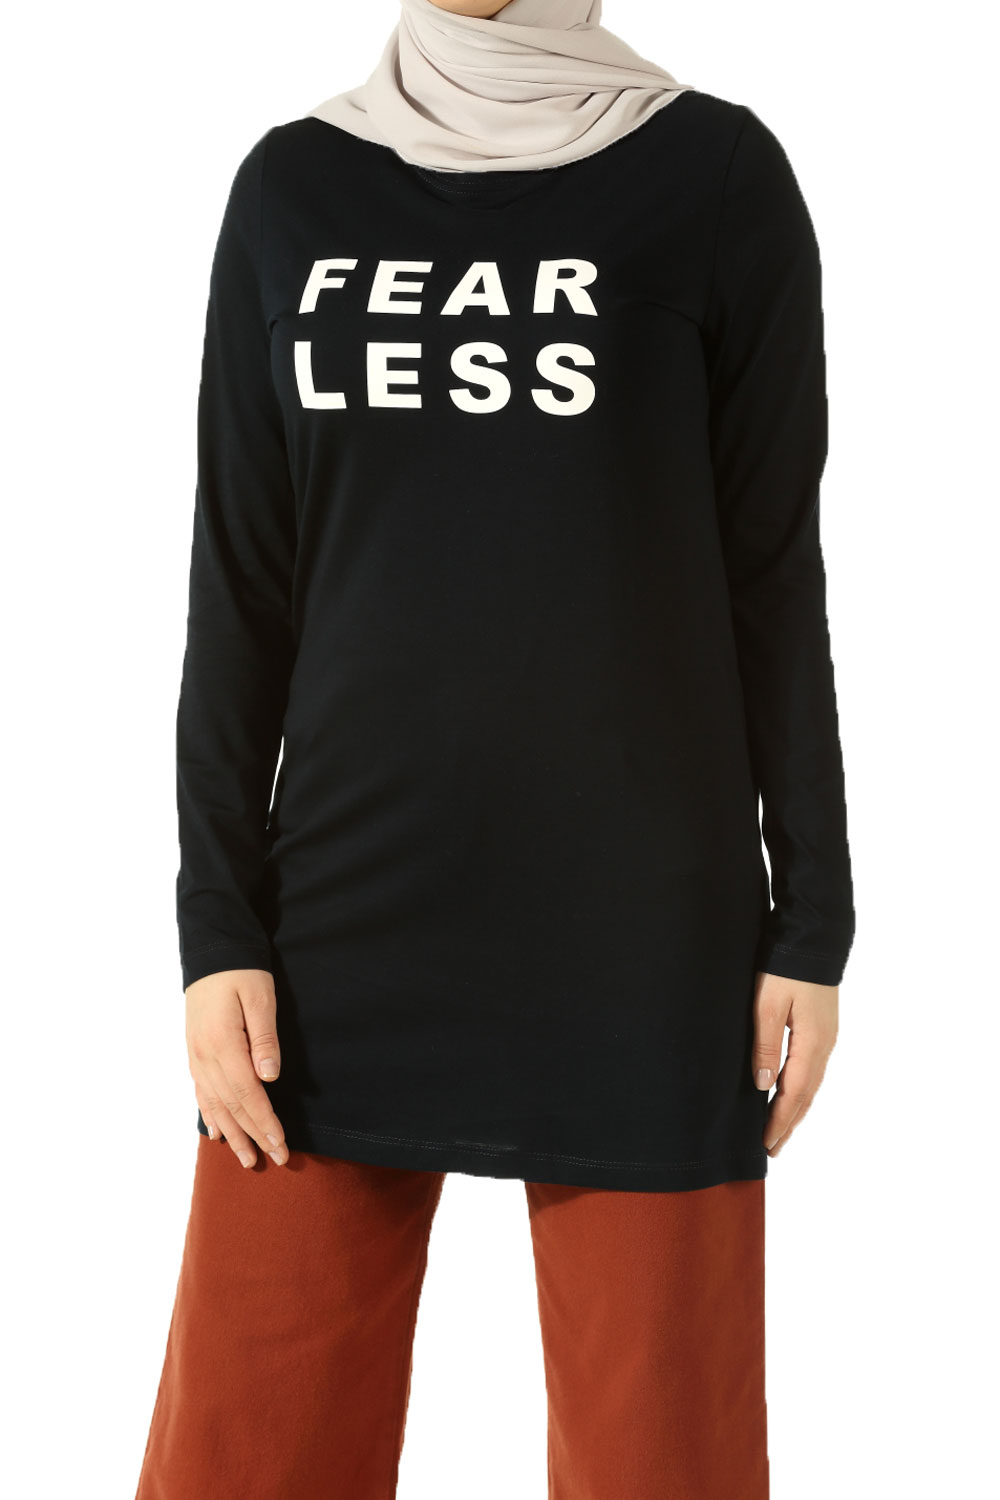 Fear Less Baskılı Penye Tunik